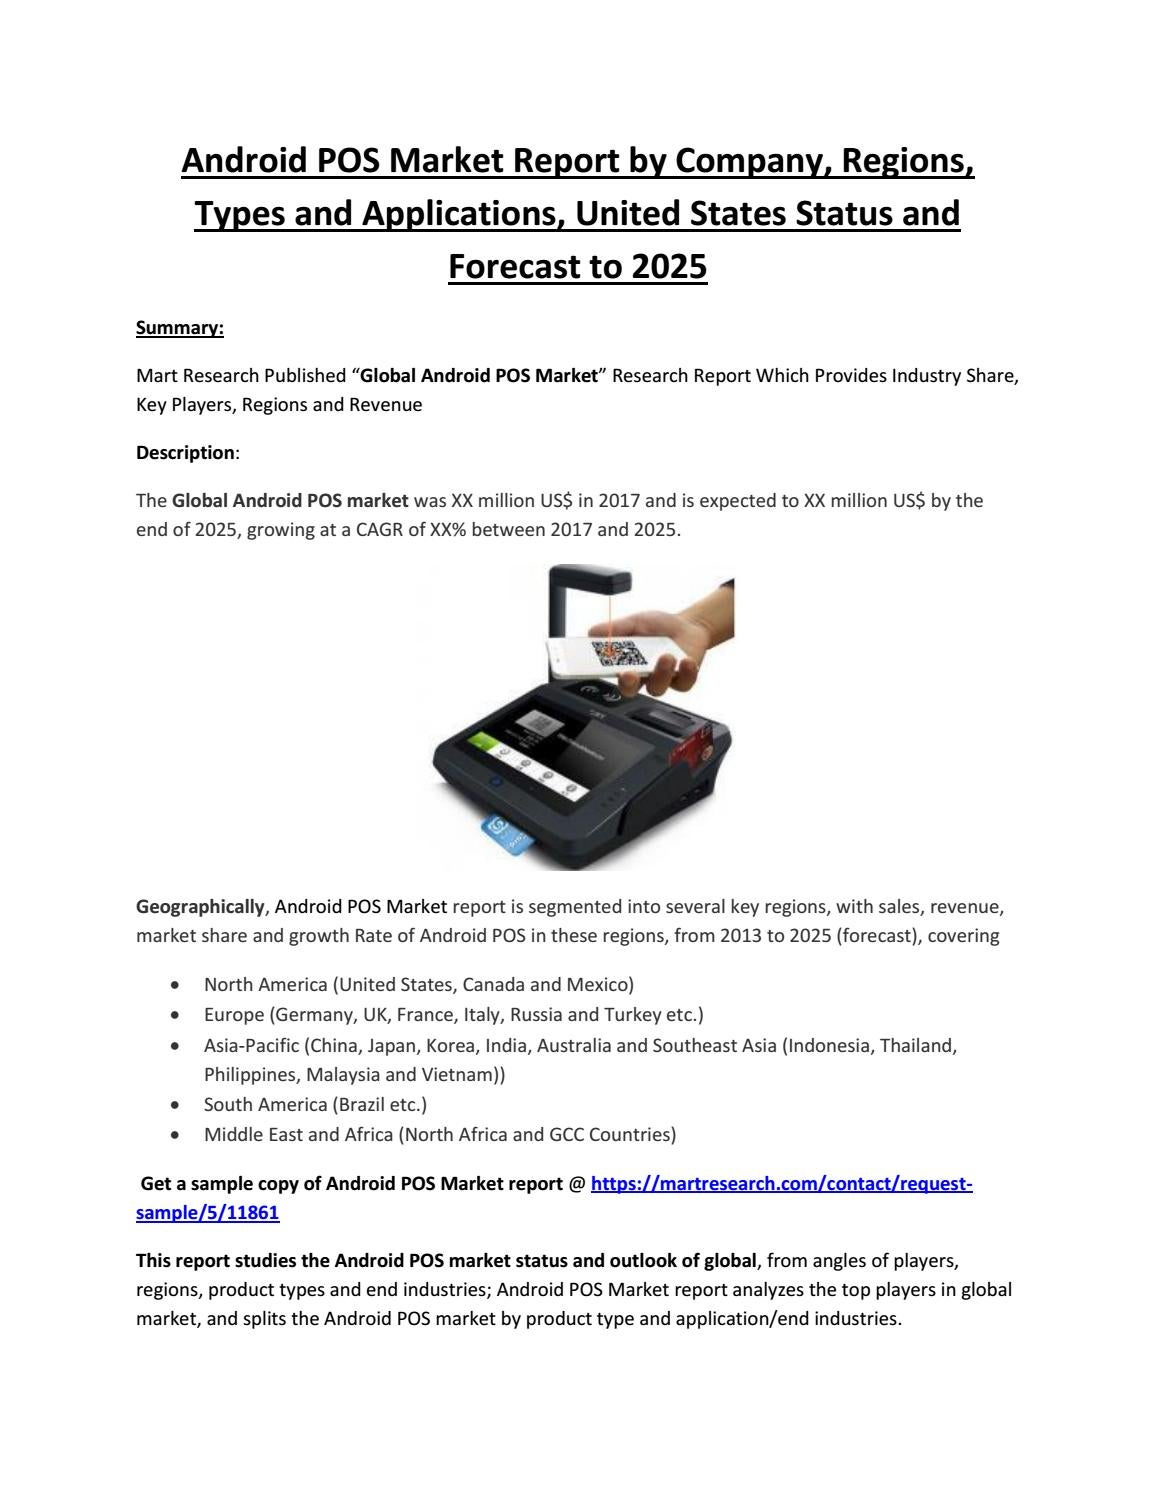 Android POS Market: 2018-2022 Global Industry Growth